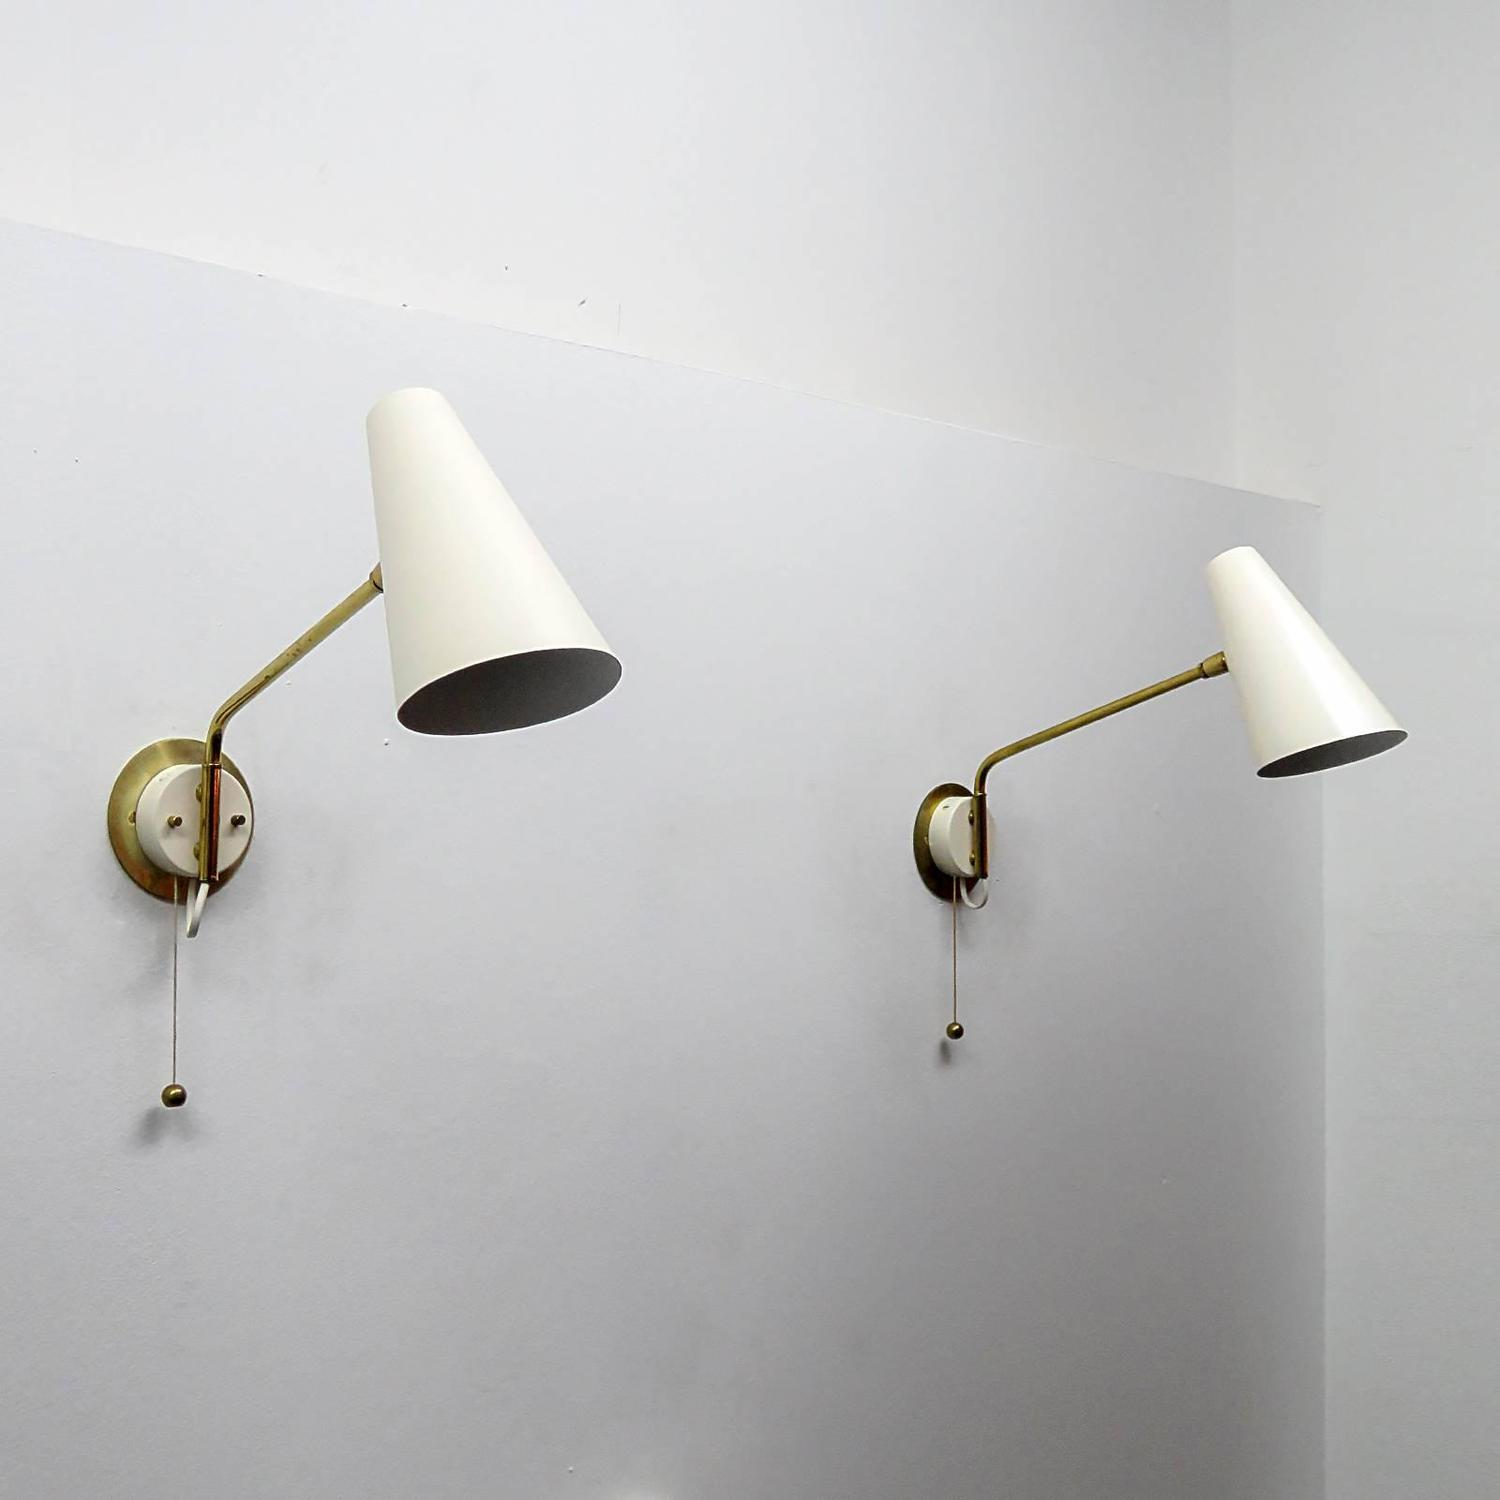 Pair of Stilnovo Swing Arm Wall Lights at 1stdibs